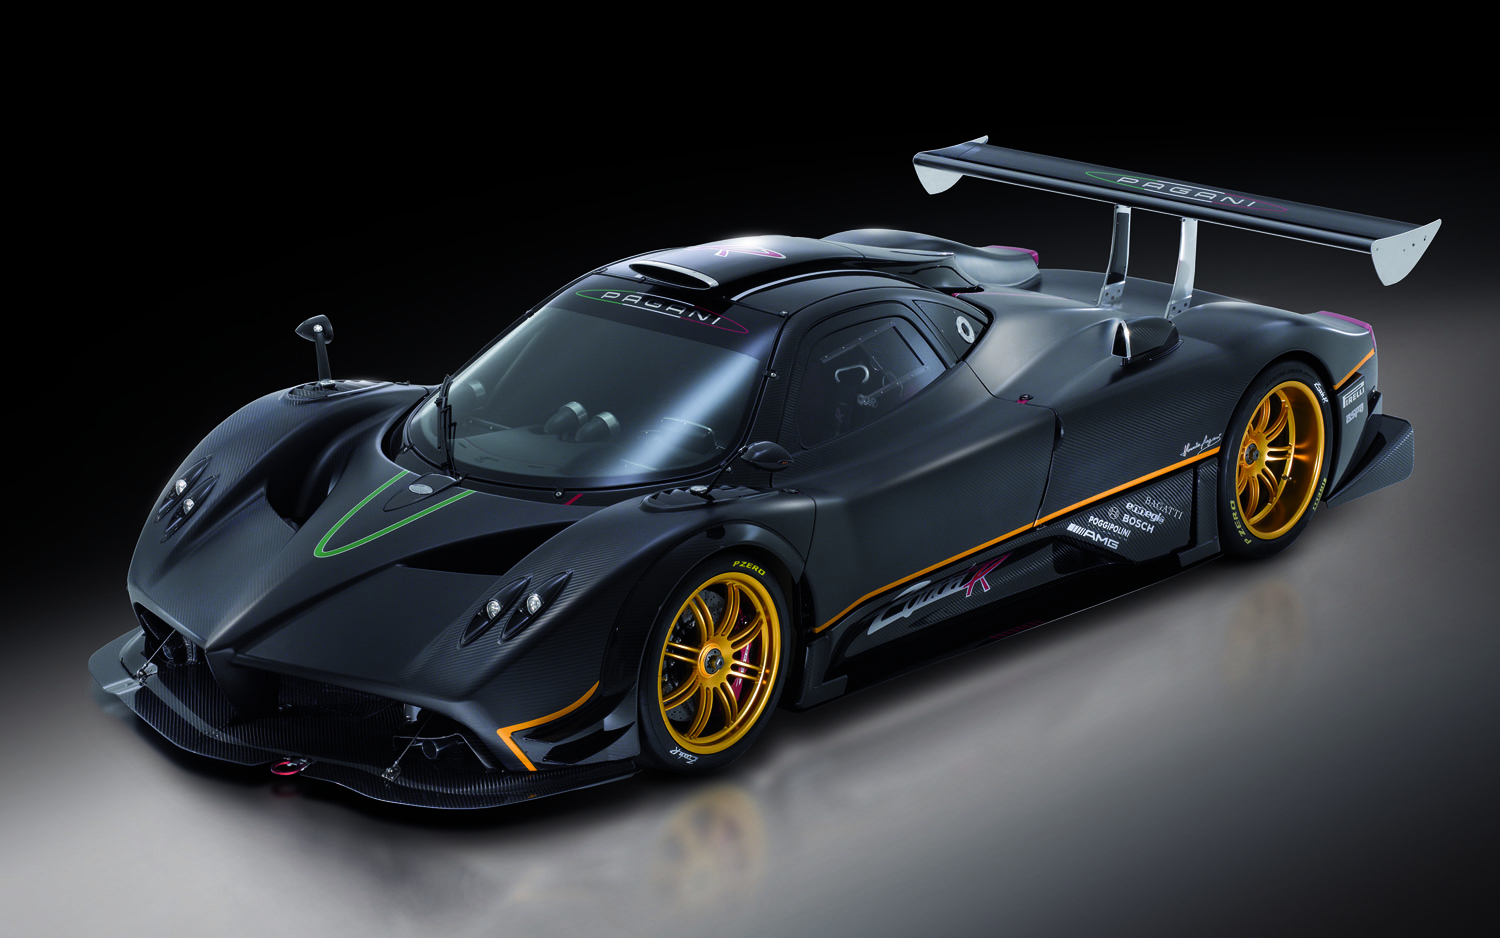 We Hear: 750-HP Pagani Zonda R Evo Debuting at Goodwood - WOT on ...